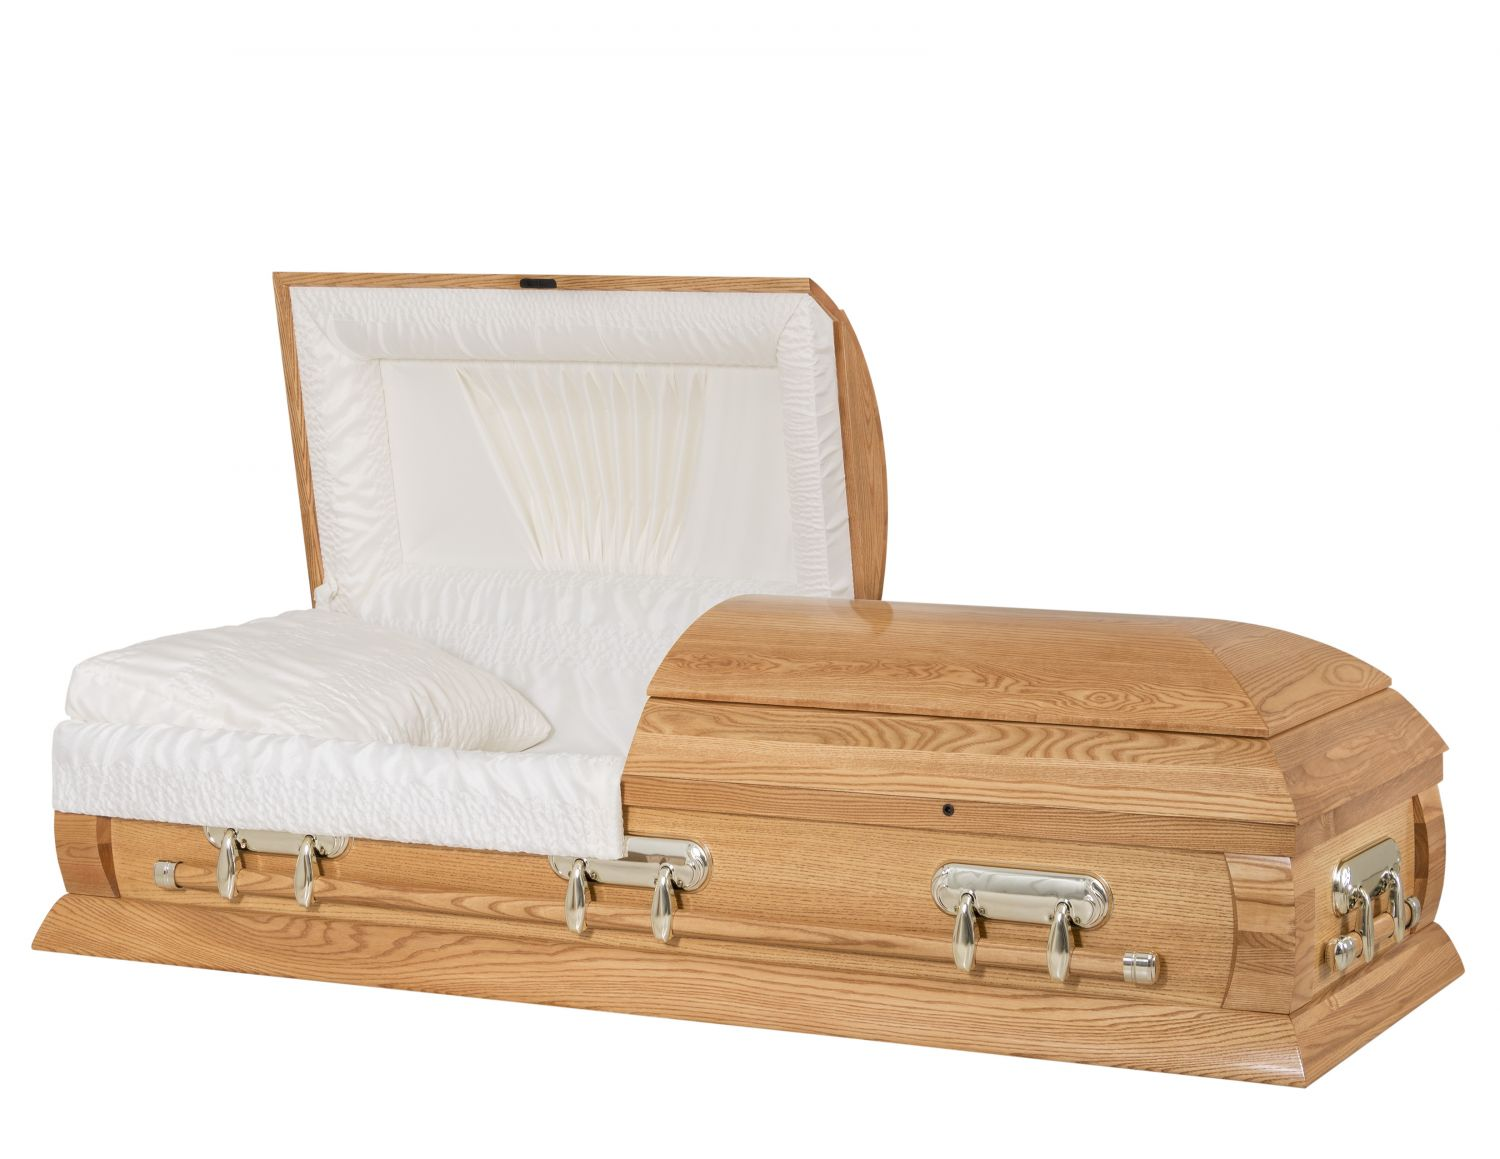 Concept Caskets 40216-00030-N ASH CASKET GLOSS CREPE MEDIUM WOOD FIBER NO H2510S-4    3 X 1 BRUNTONE